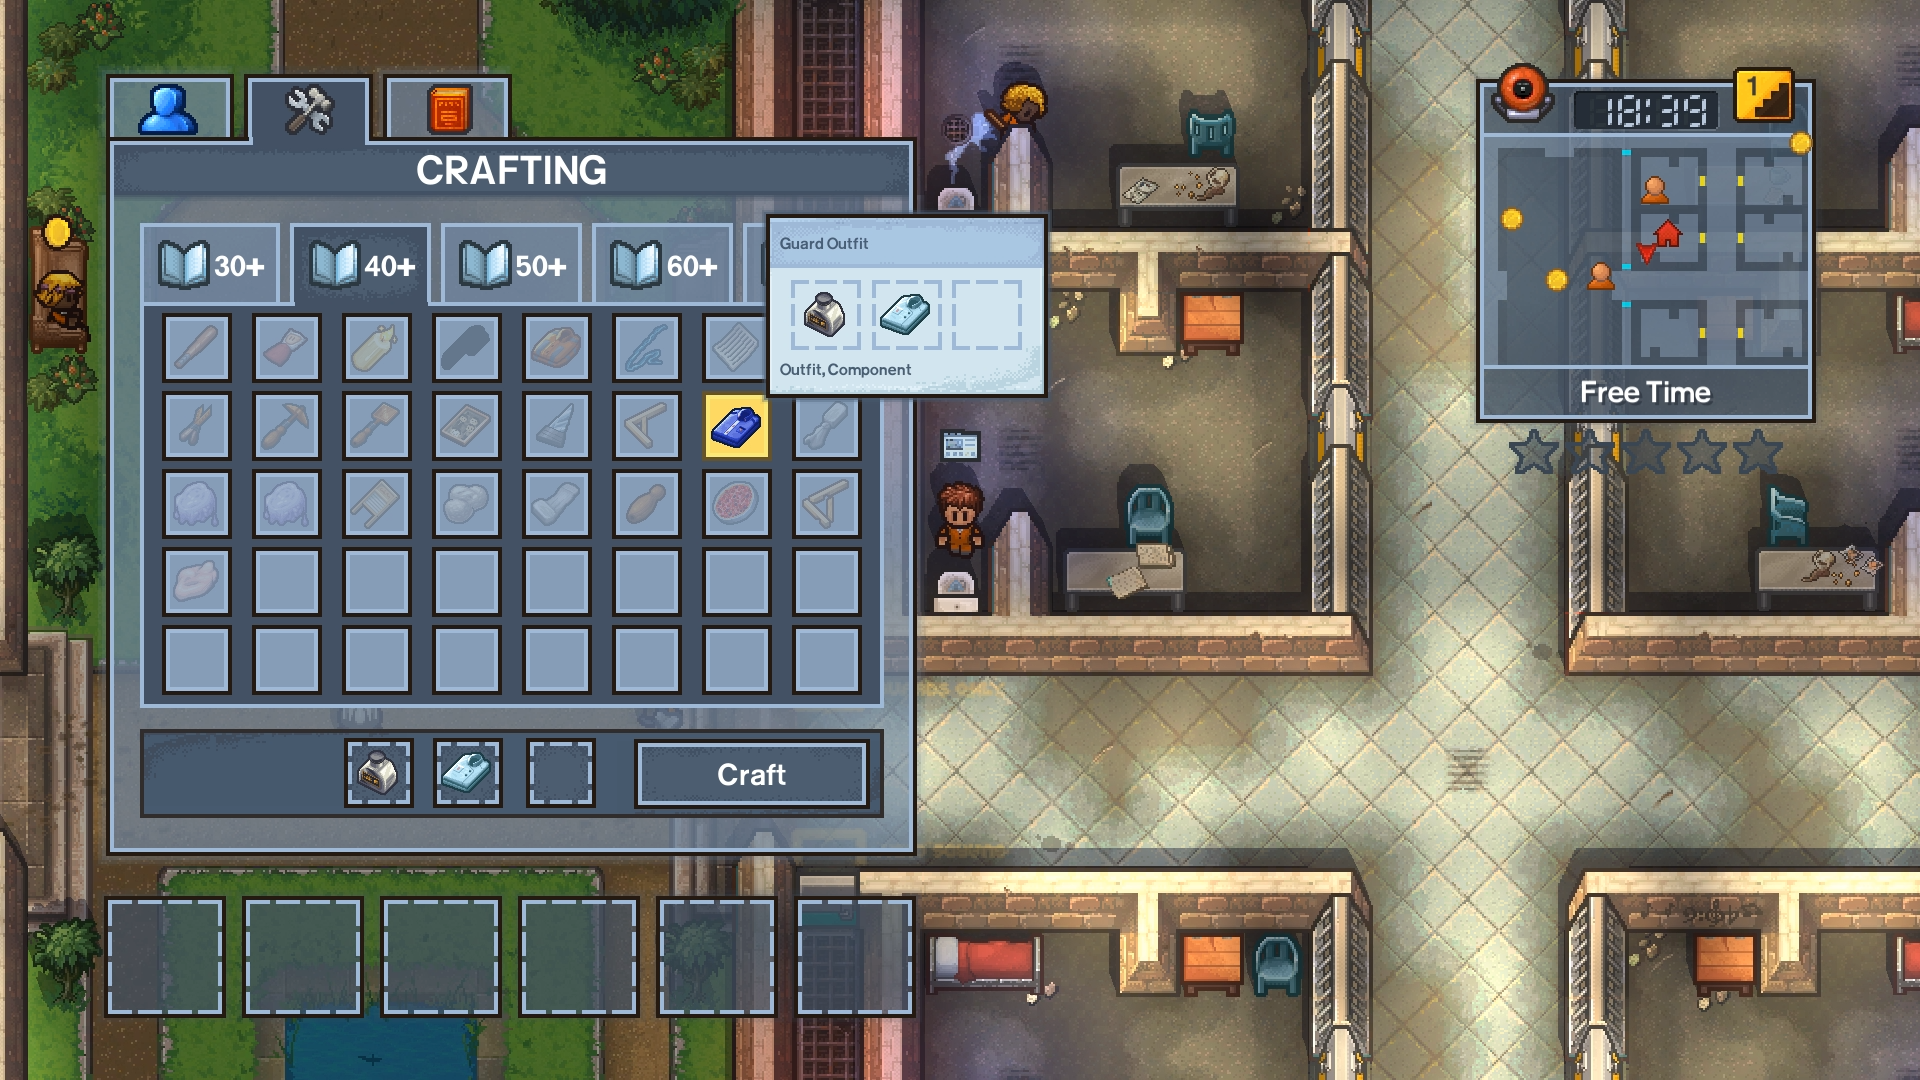 Turf N Surf >> The Escapists 2 Review - Get Me Out Of Here, Please!